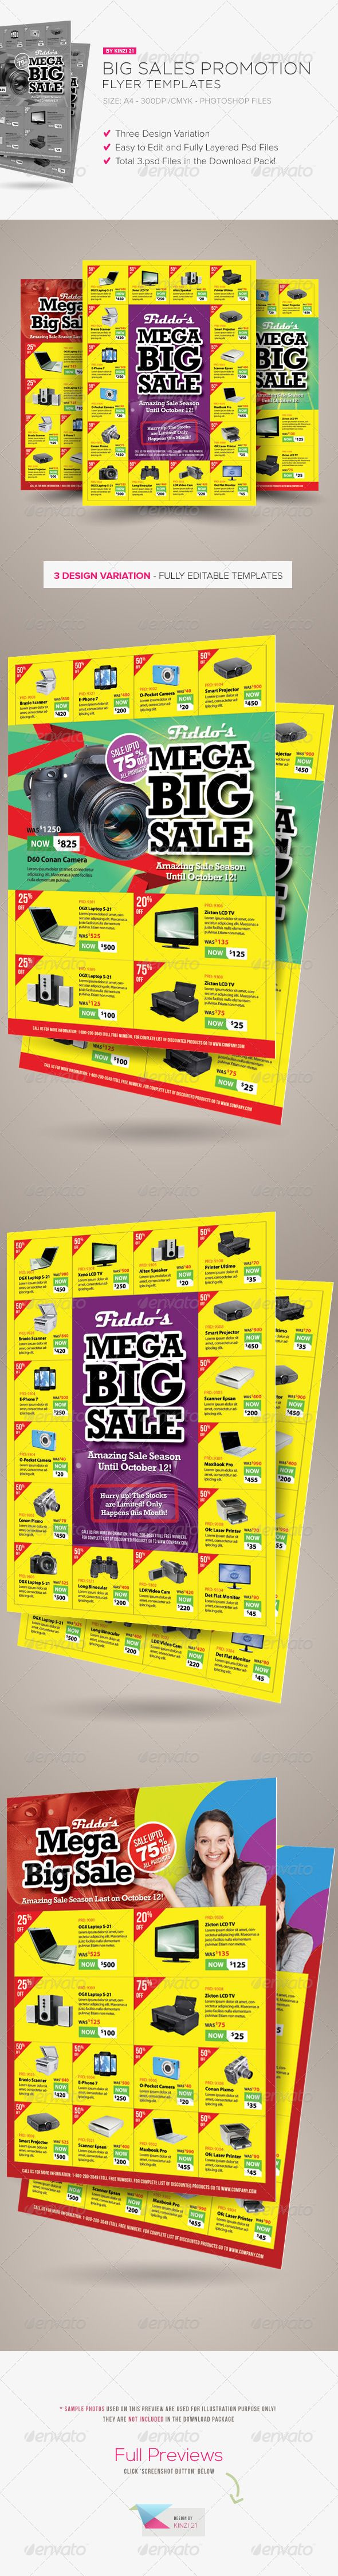 Big Sale Promotion Flyers - Big Sale Promotion Flyers are design templates created for sale on Graphic River. More info of the templates and how to get the template sourcefiles can be found on this page: http://graphicriver.net/item/big-sale-promotion-flyers/5595976?r=kinzi21